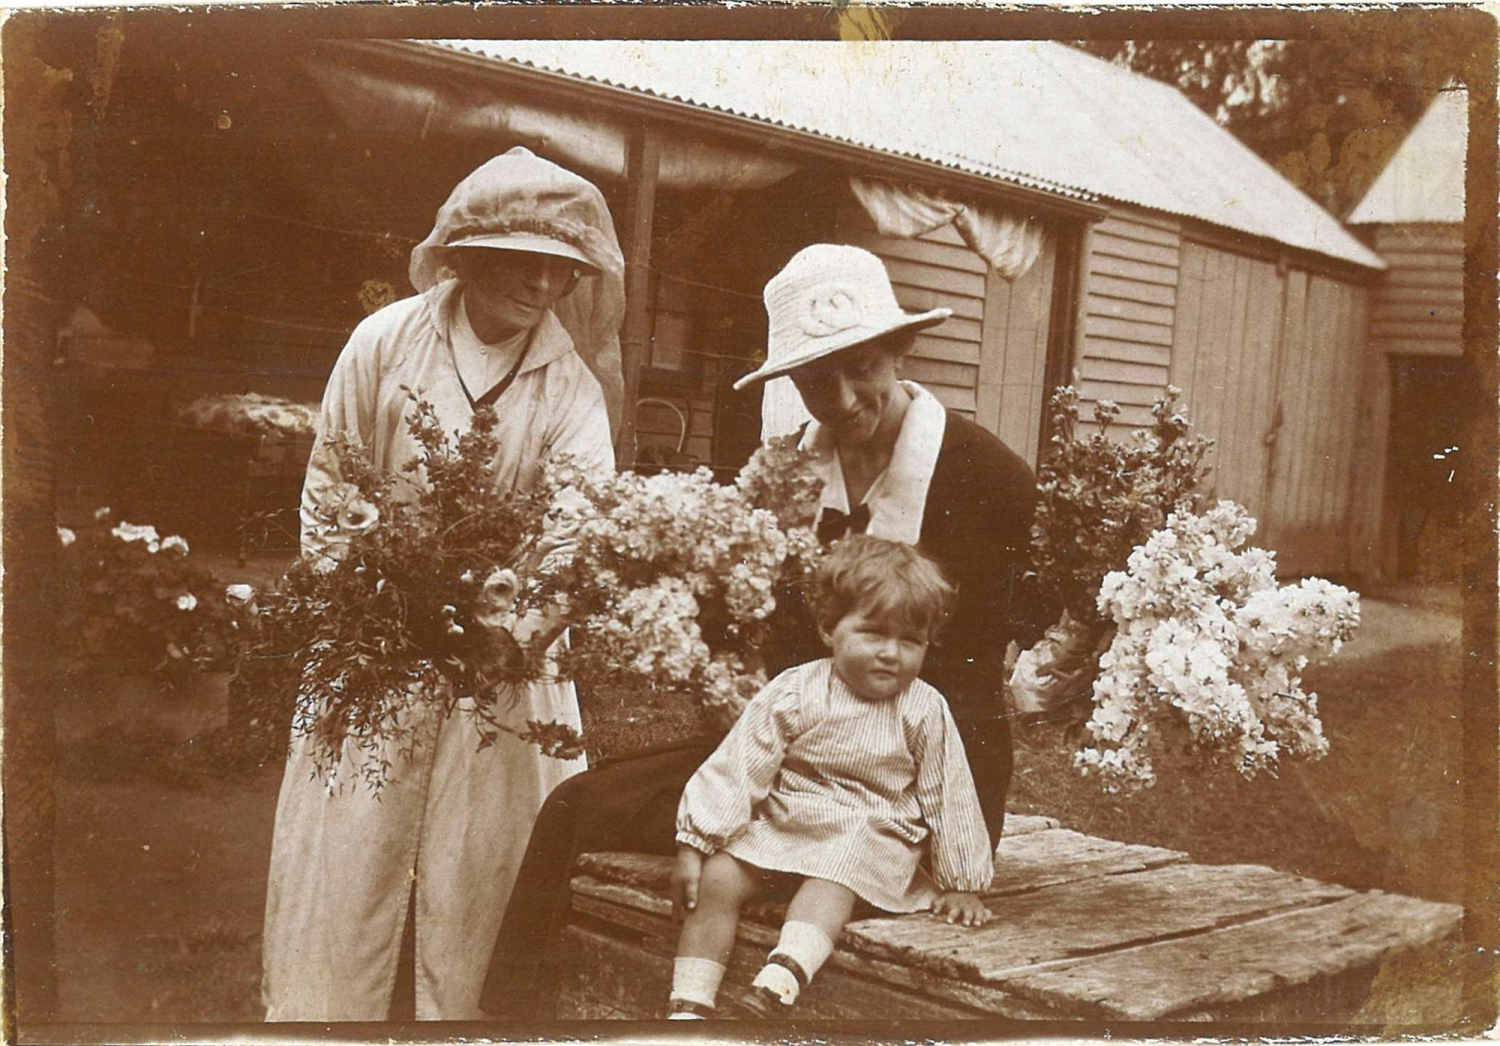 Black and white photo of two women wearing hats, holding flowers on table with small girl seated.